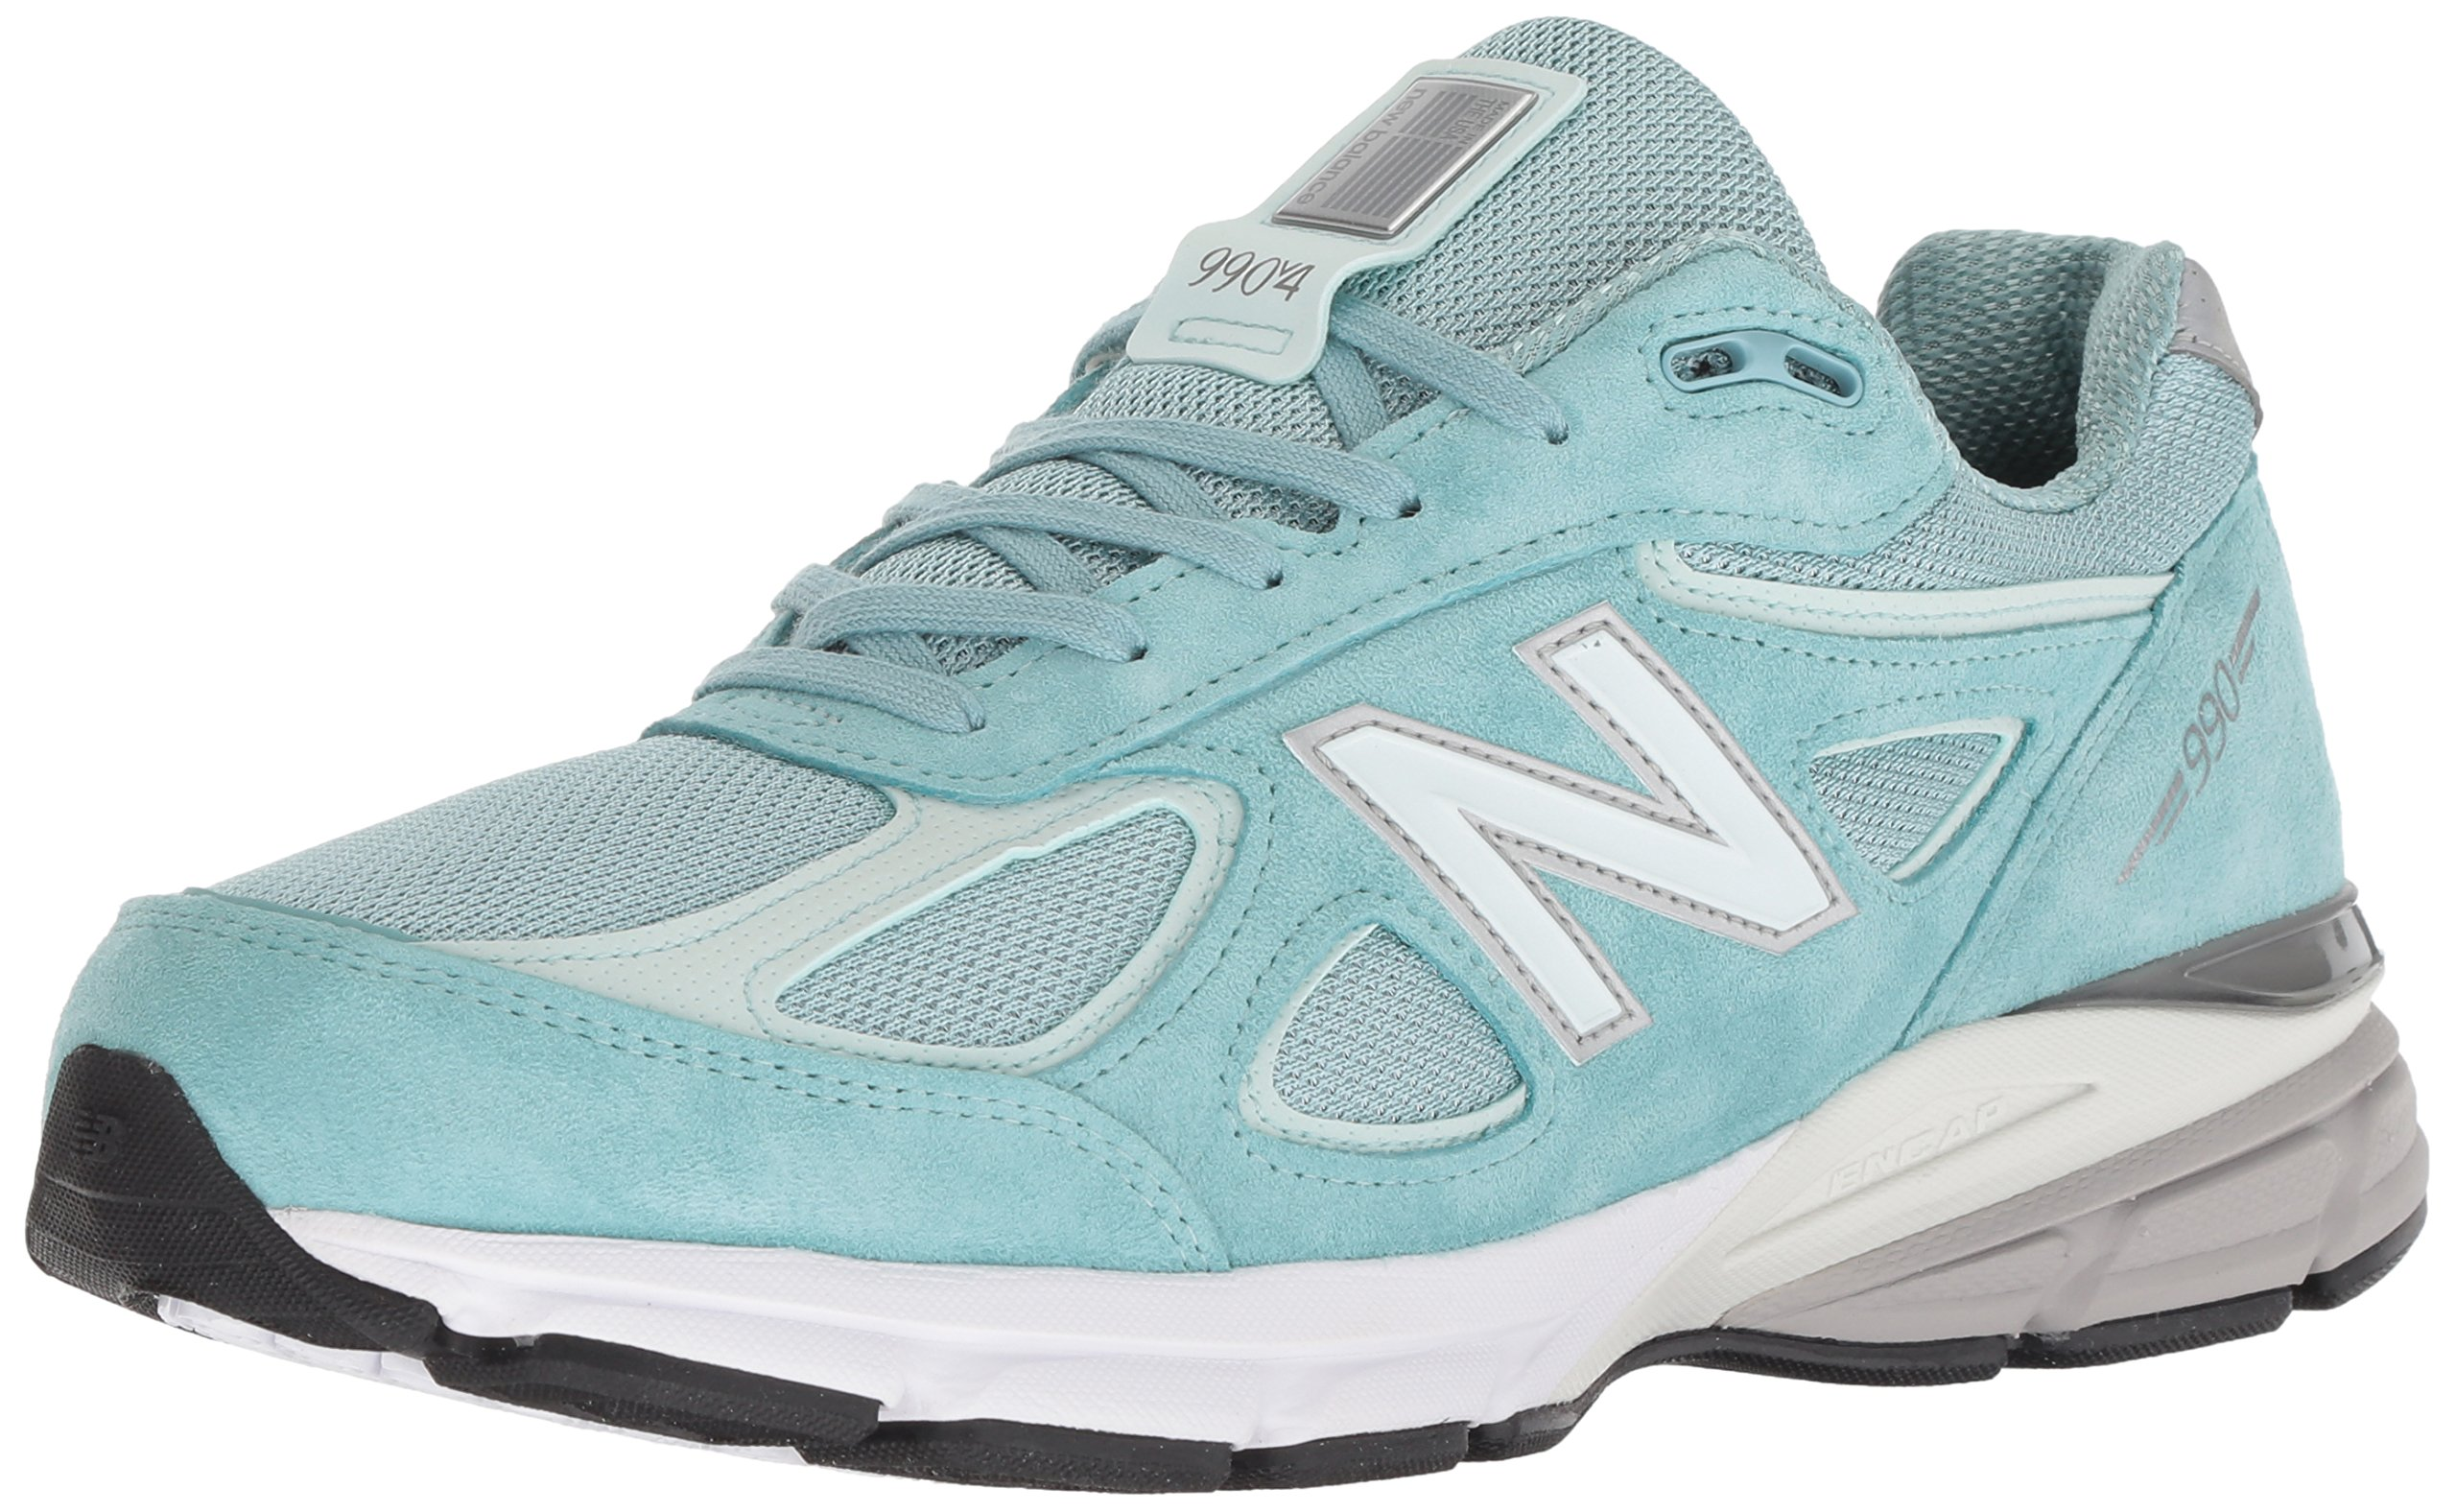 New Balance Men's 990v4, Green/White, 7 D US by New Balance (Image #1)